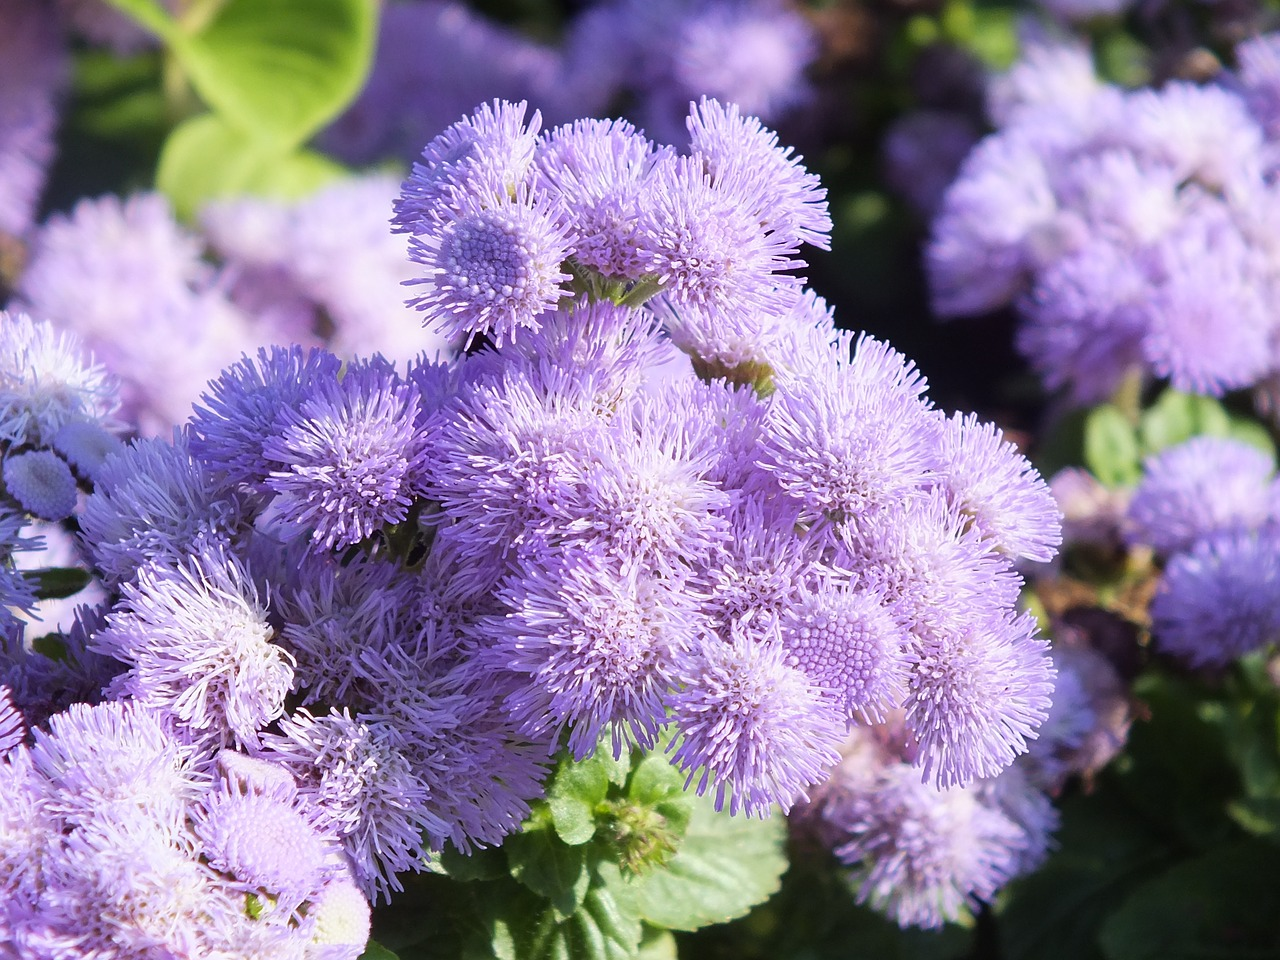 Download free photo of Ageratum,flowers,lilac,garden flowers,ageratum  conyzoides - from needpix.com